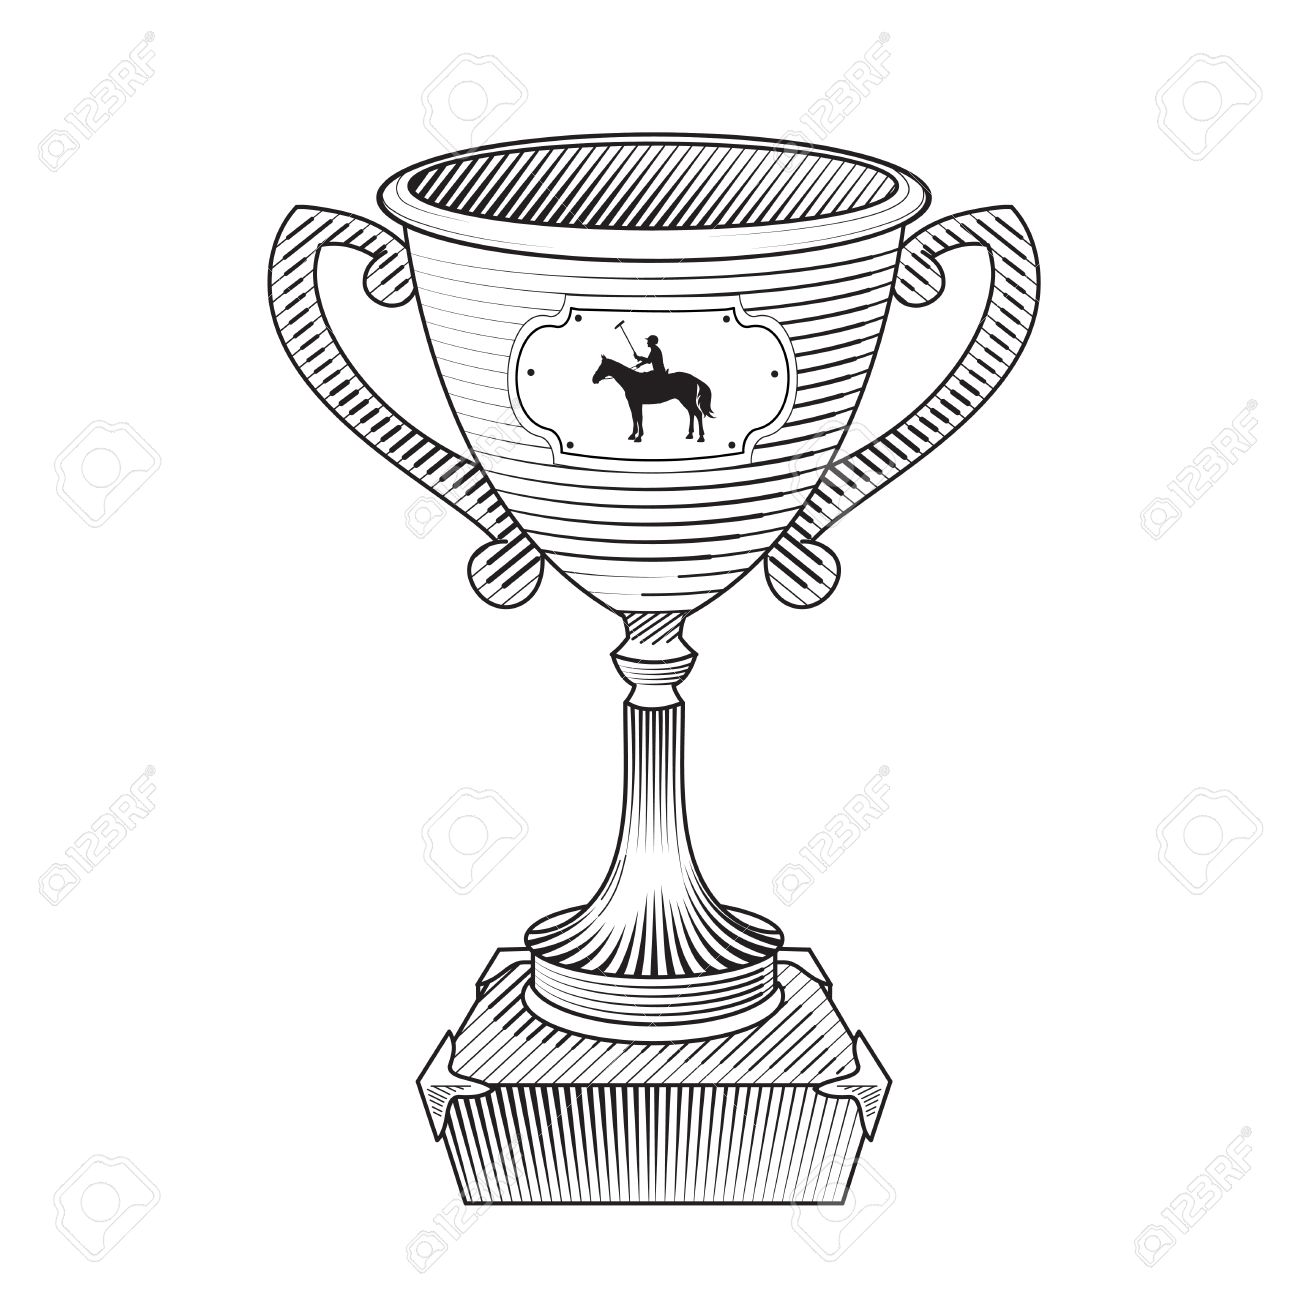 1300x1300 Metallic Trophy Cup With Horse Polo Player. Champions Cup Icon